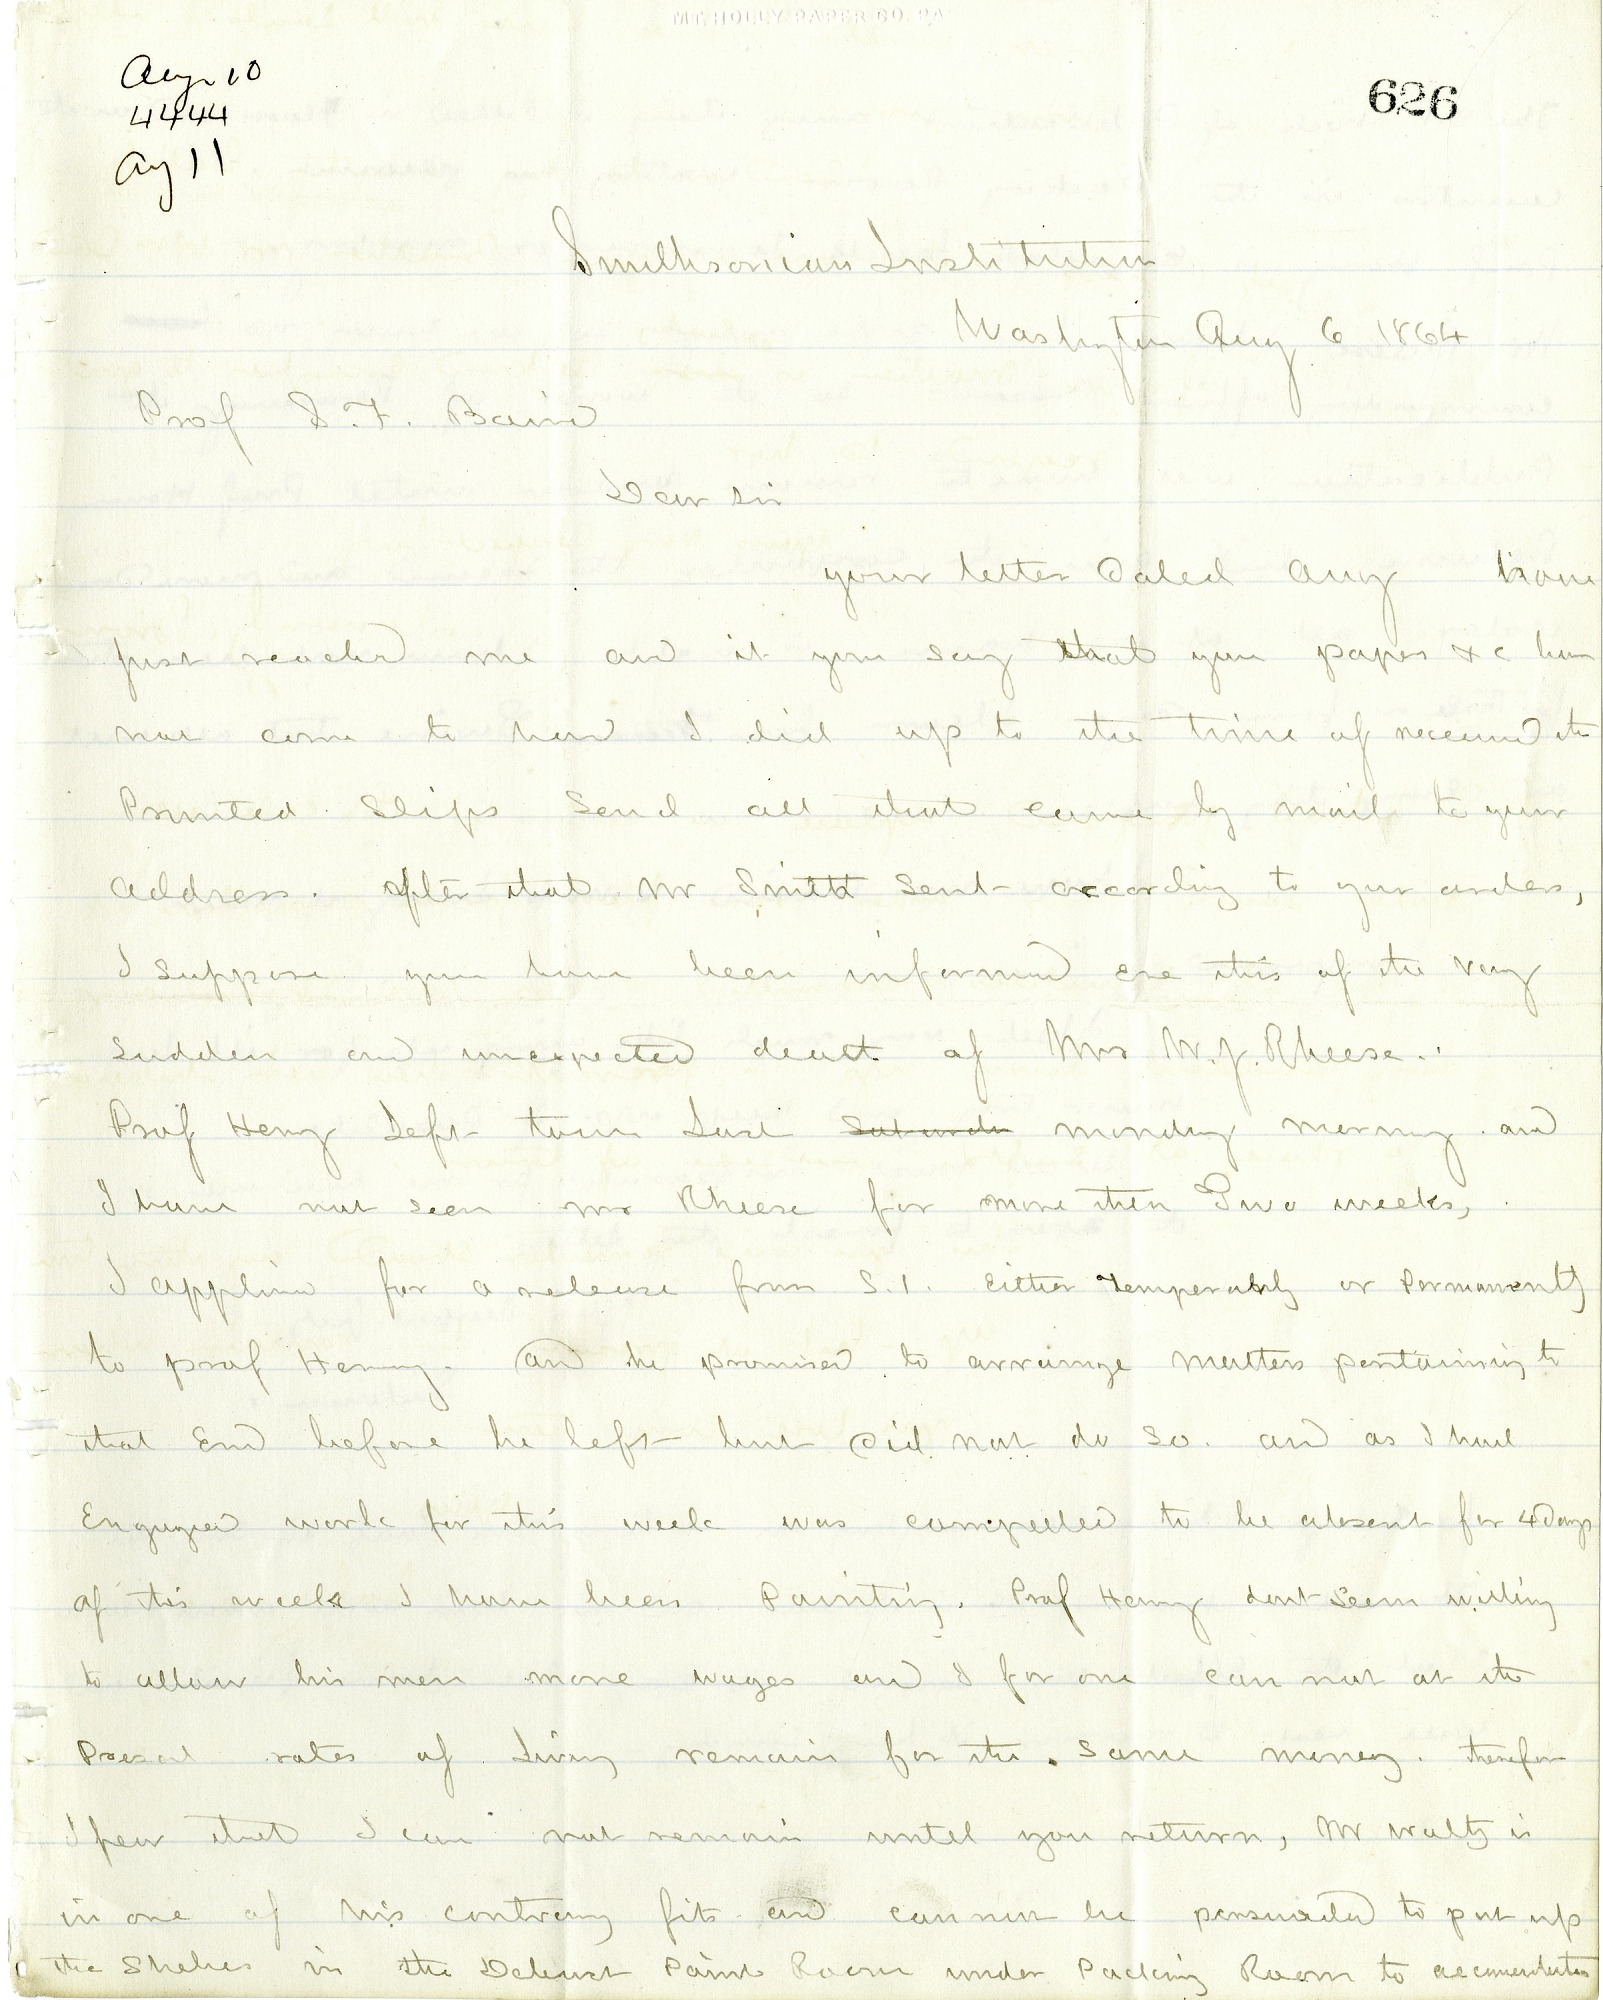 Letter from Solomon G. Brown to S. F. Baird, August 6, 1864